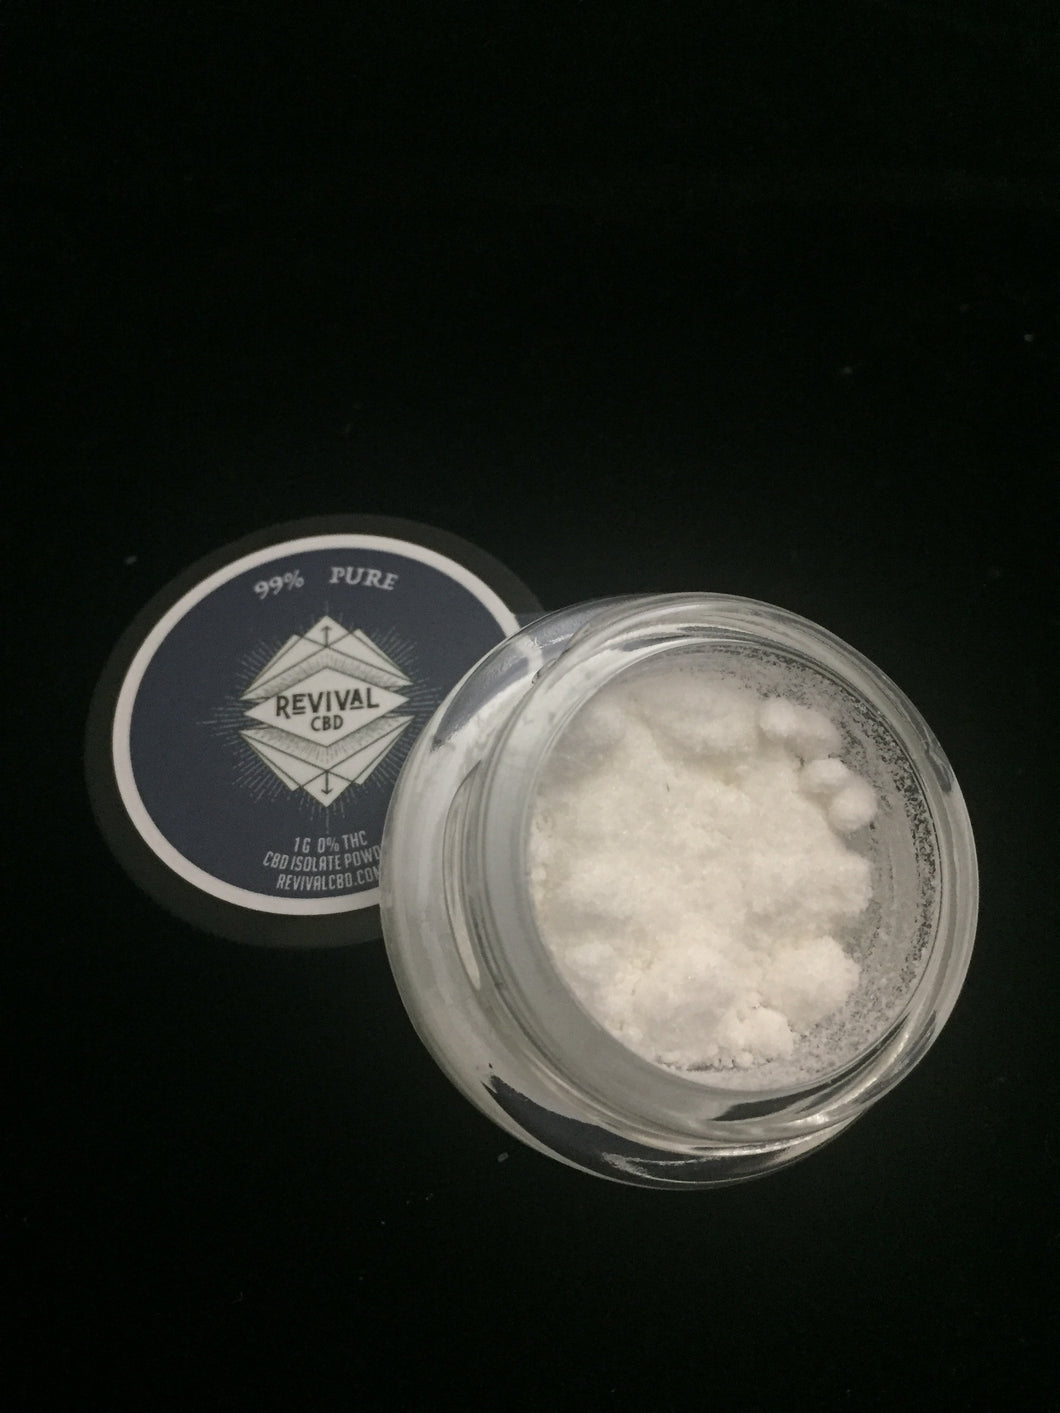 Revival CBD Isolate